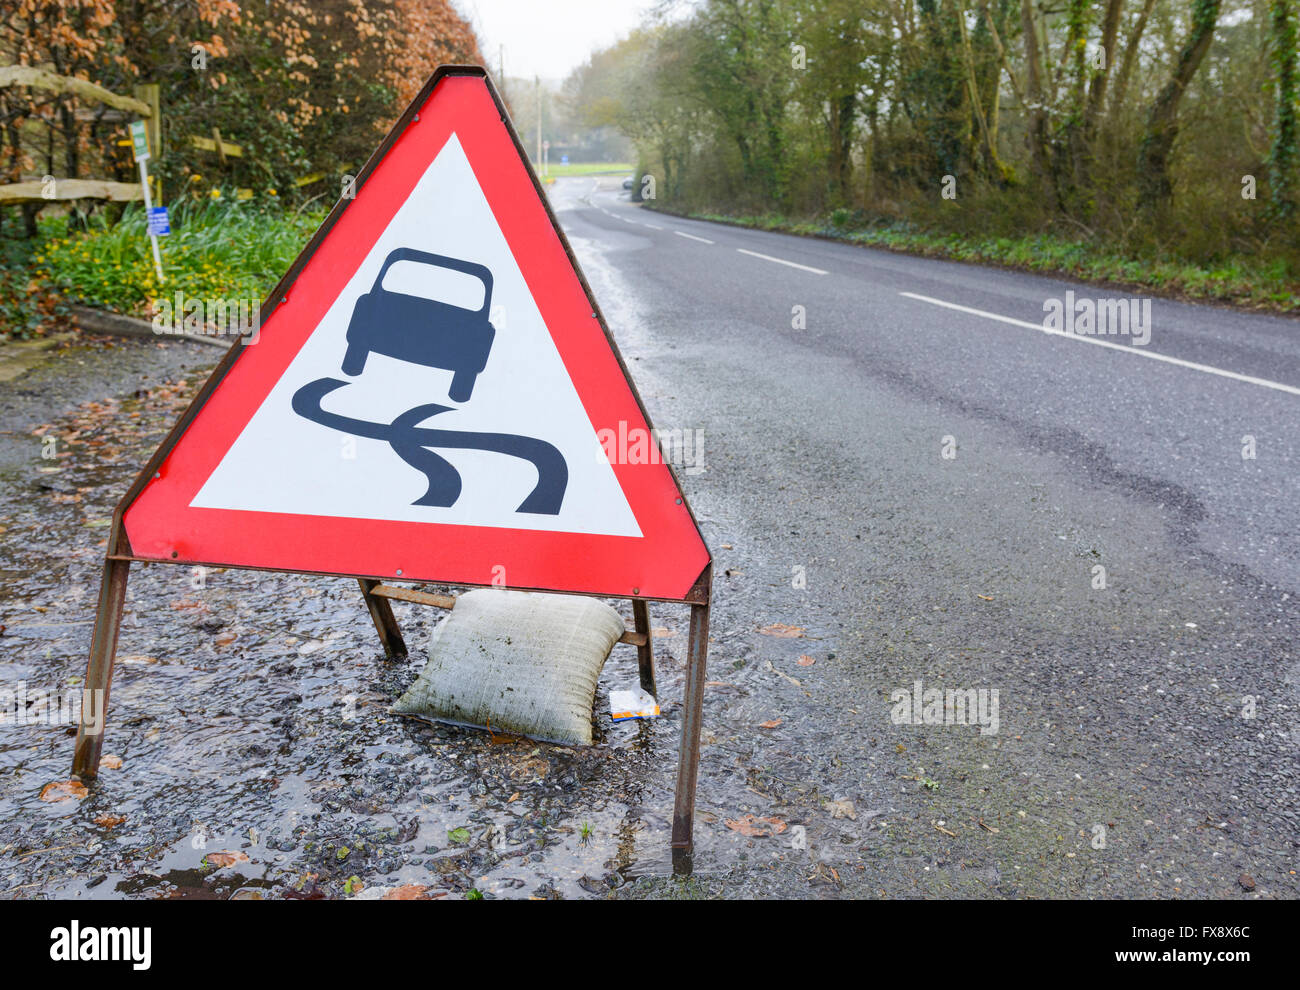 Slippery road triangular warning sign on a flooded road in the UK. Stock Photo